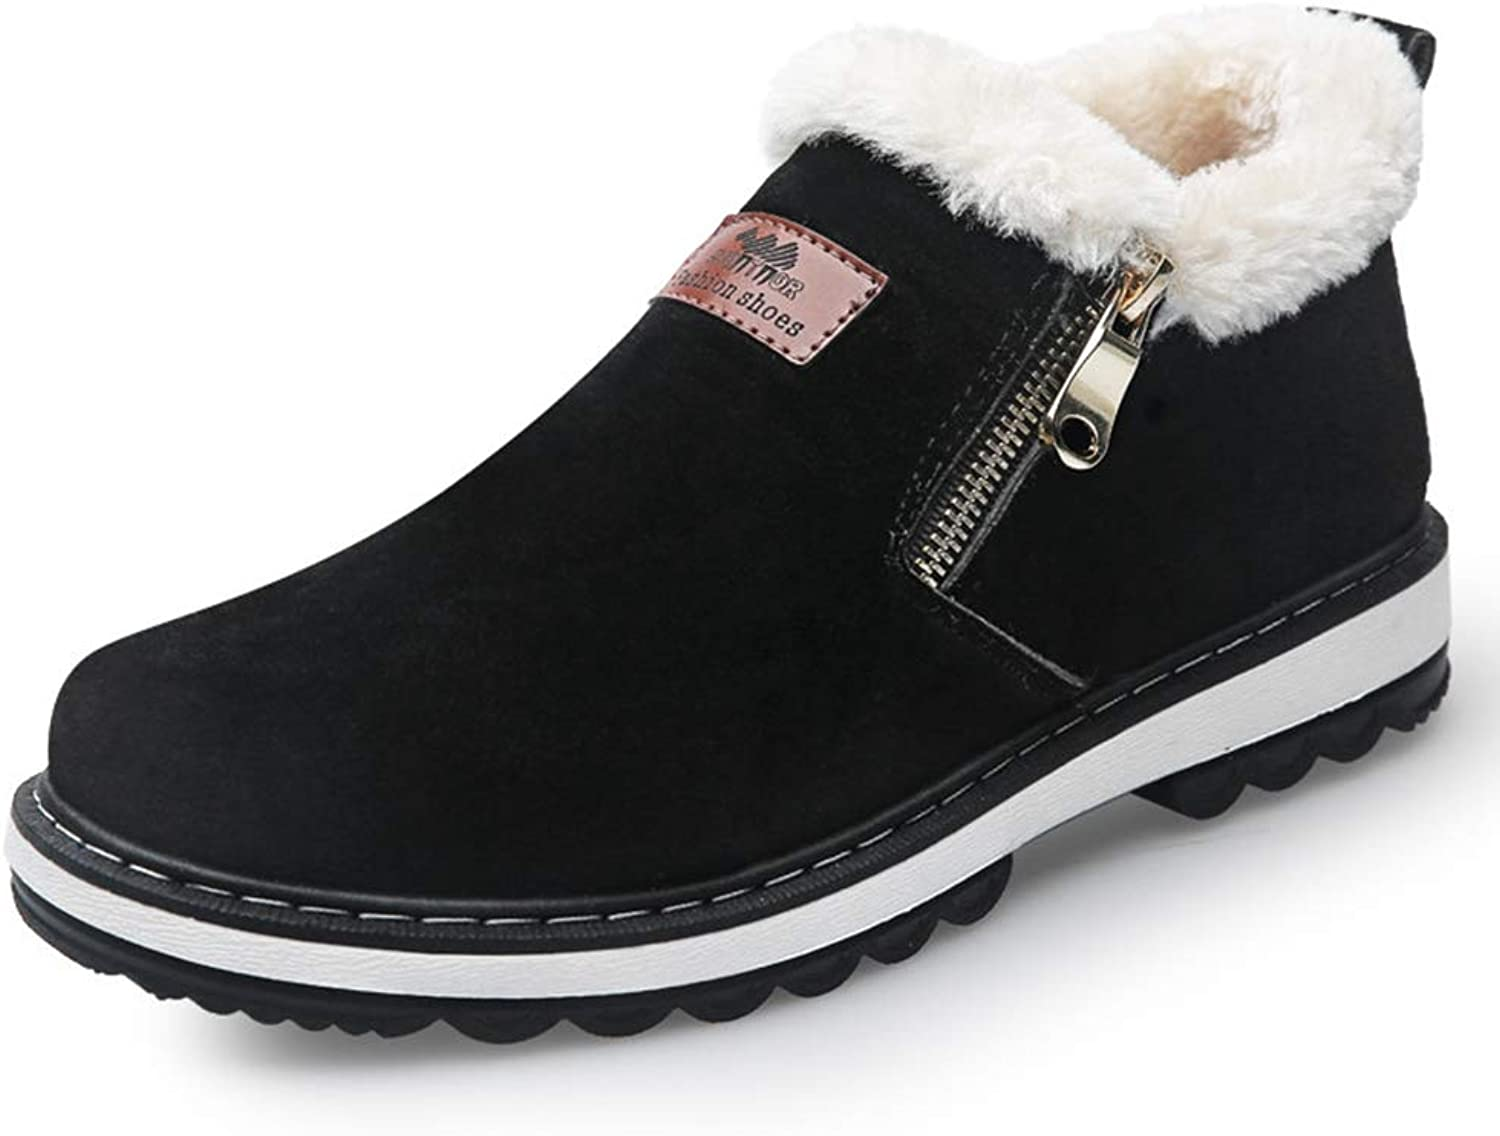 Men Winter Warm shoes Faux Fur Lined Short Ankle Boots Side Zip Comfort Flats Slip On Booties